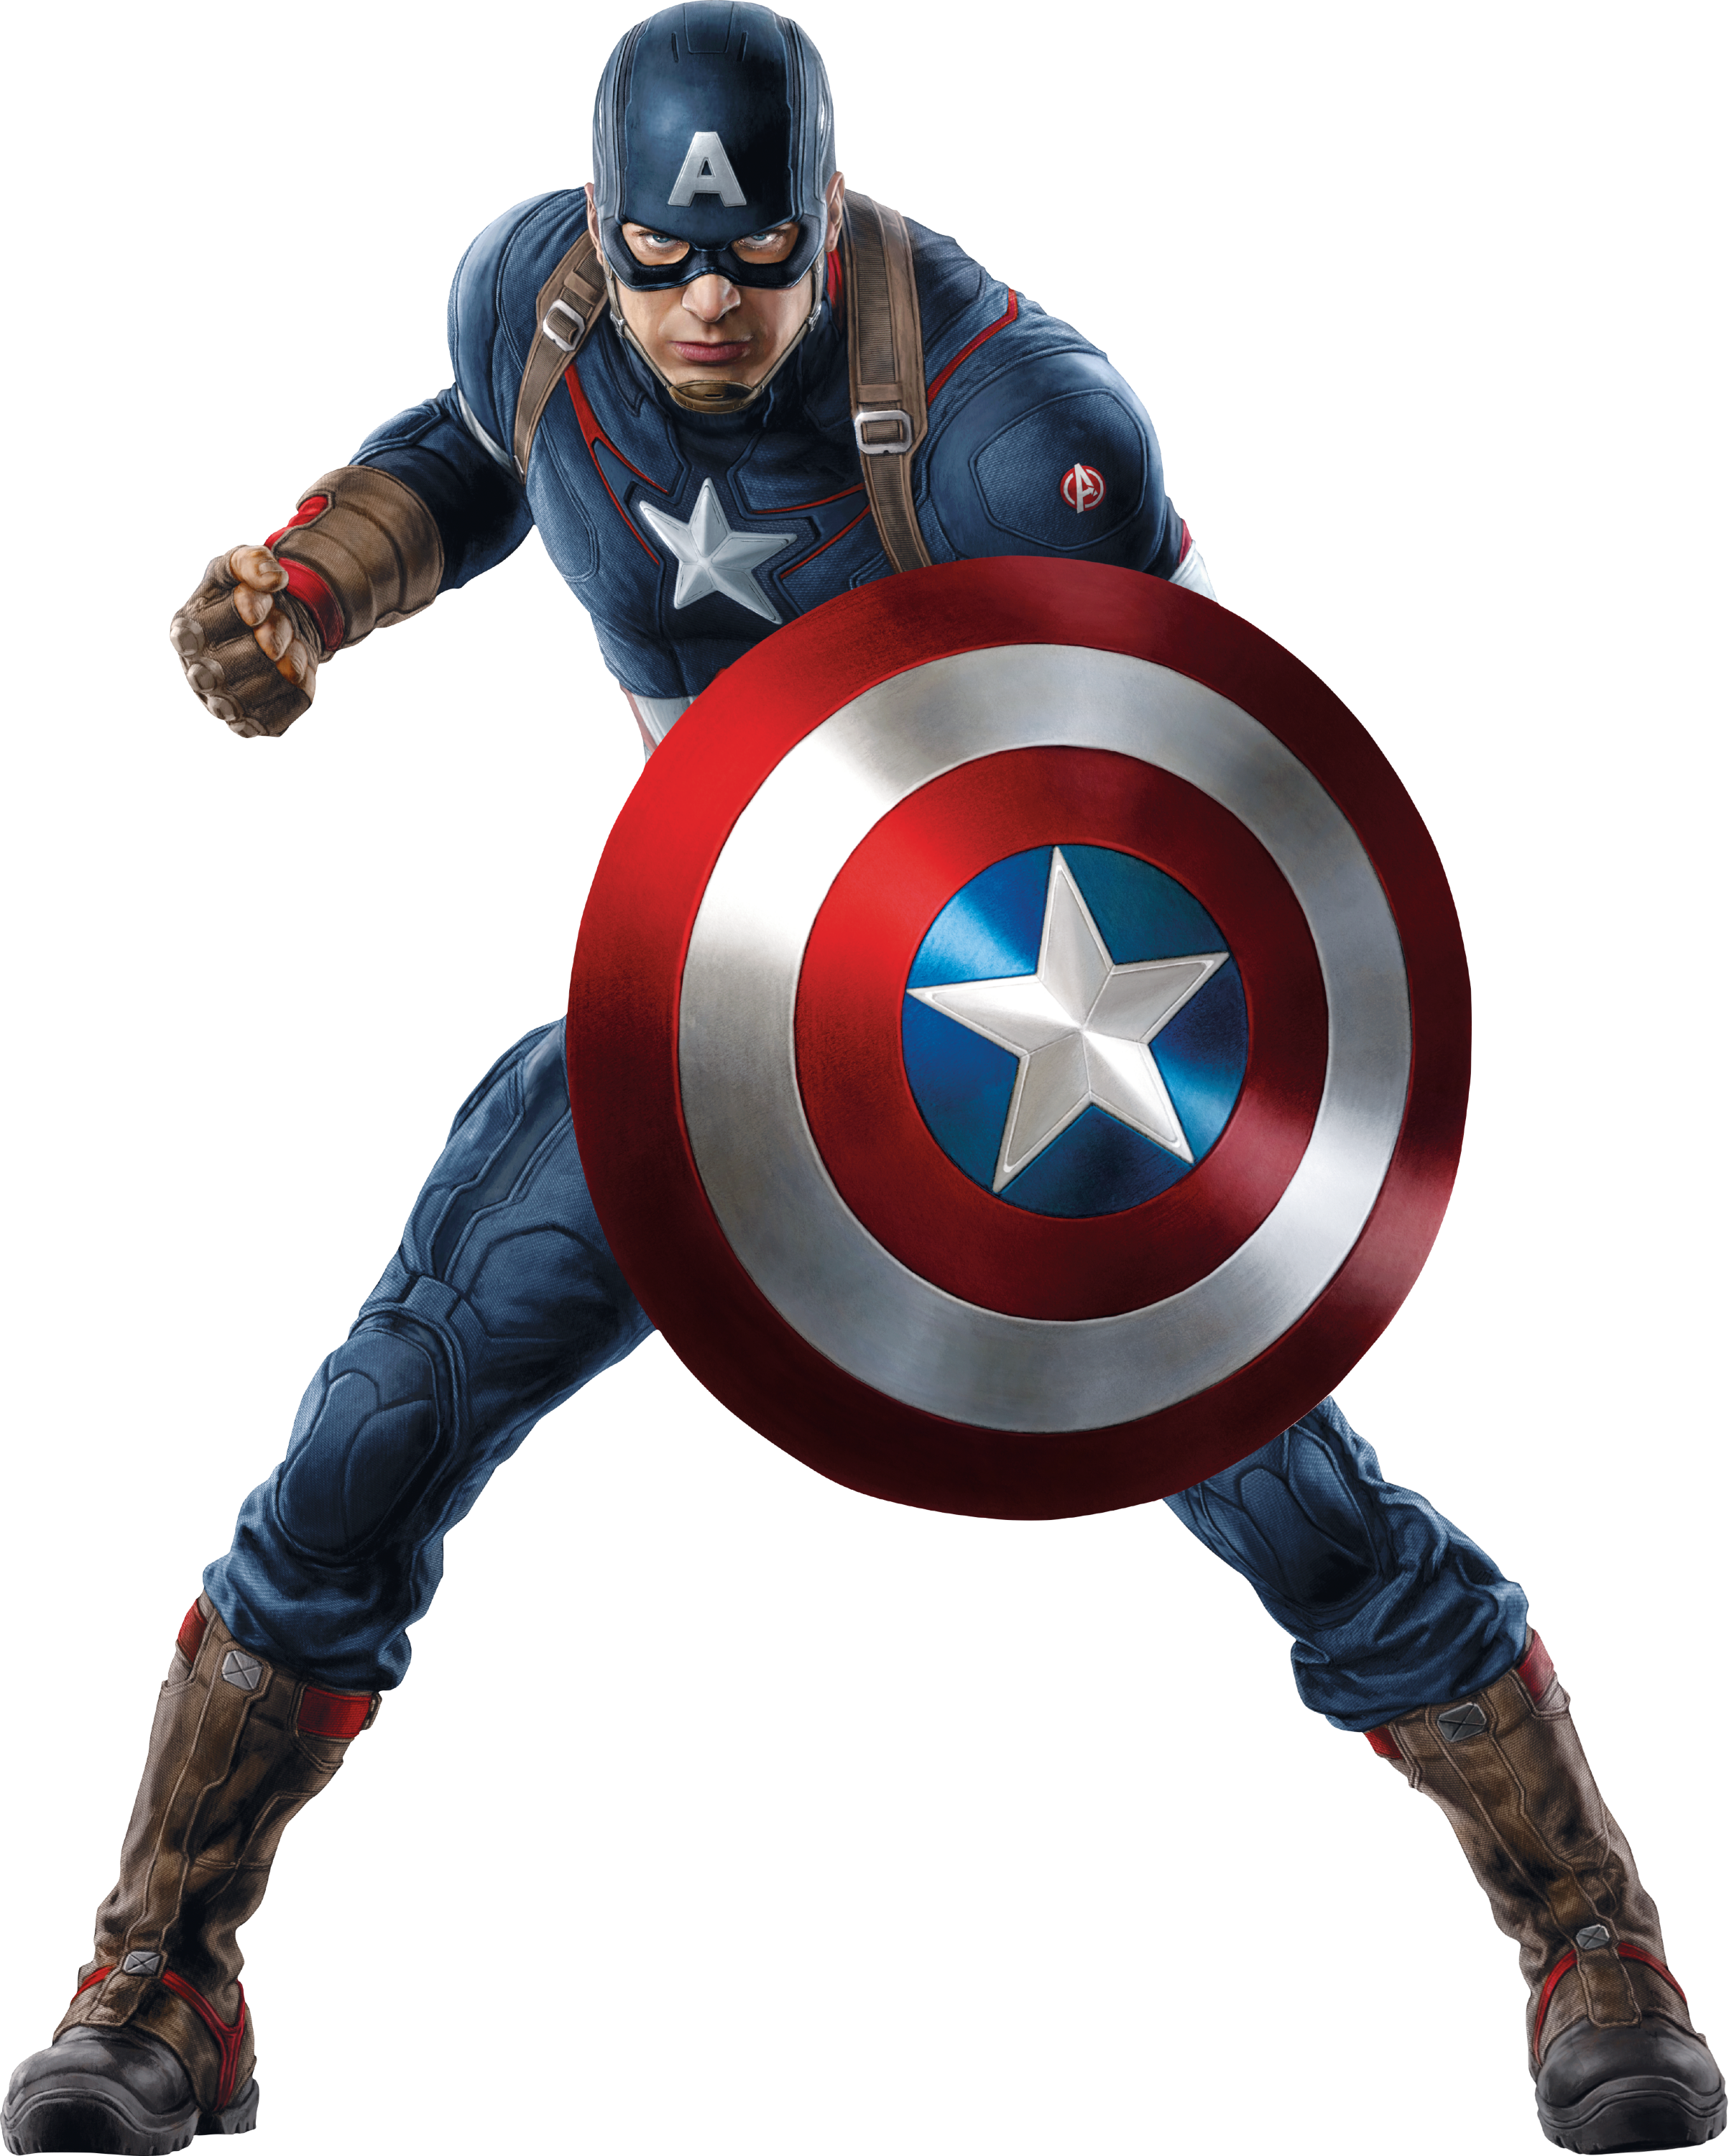 Captain america .png. Png images free download